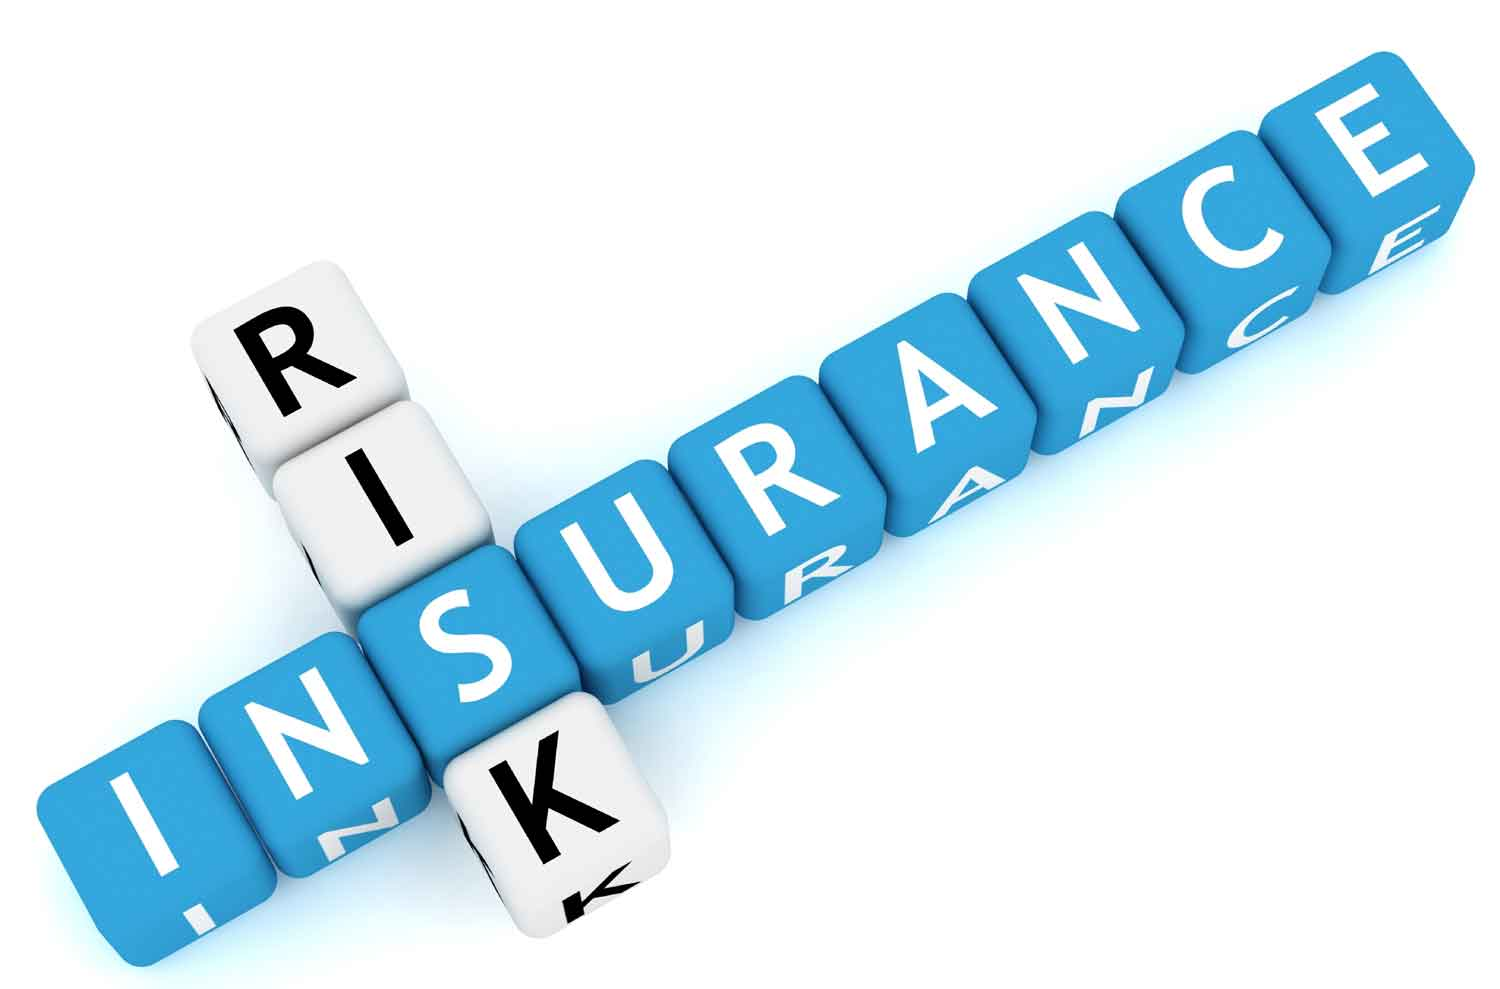 AIICO Insurance opens rights issue